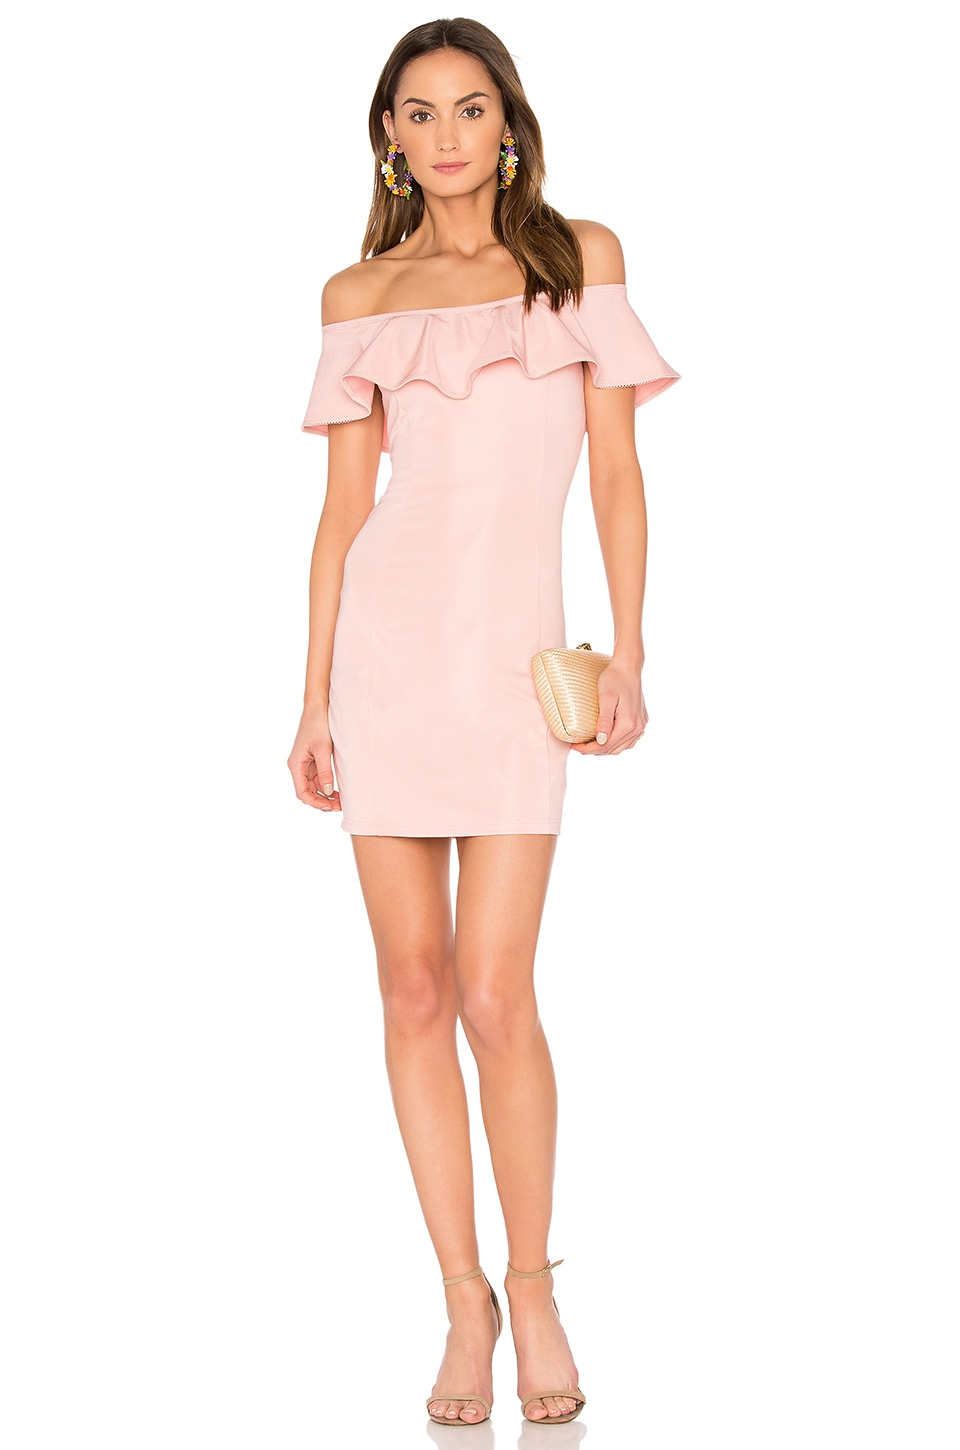 Capulet x REVOLVE Eva Off the Shoulder Mini Dress in in Blush